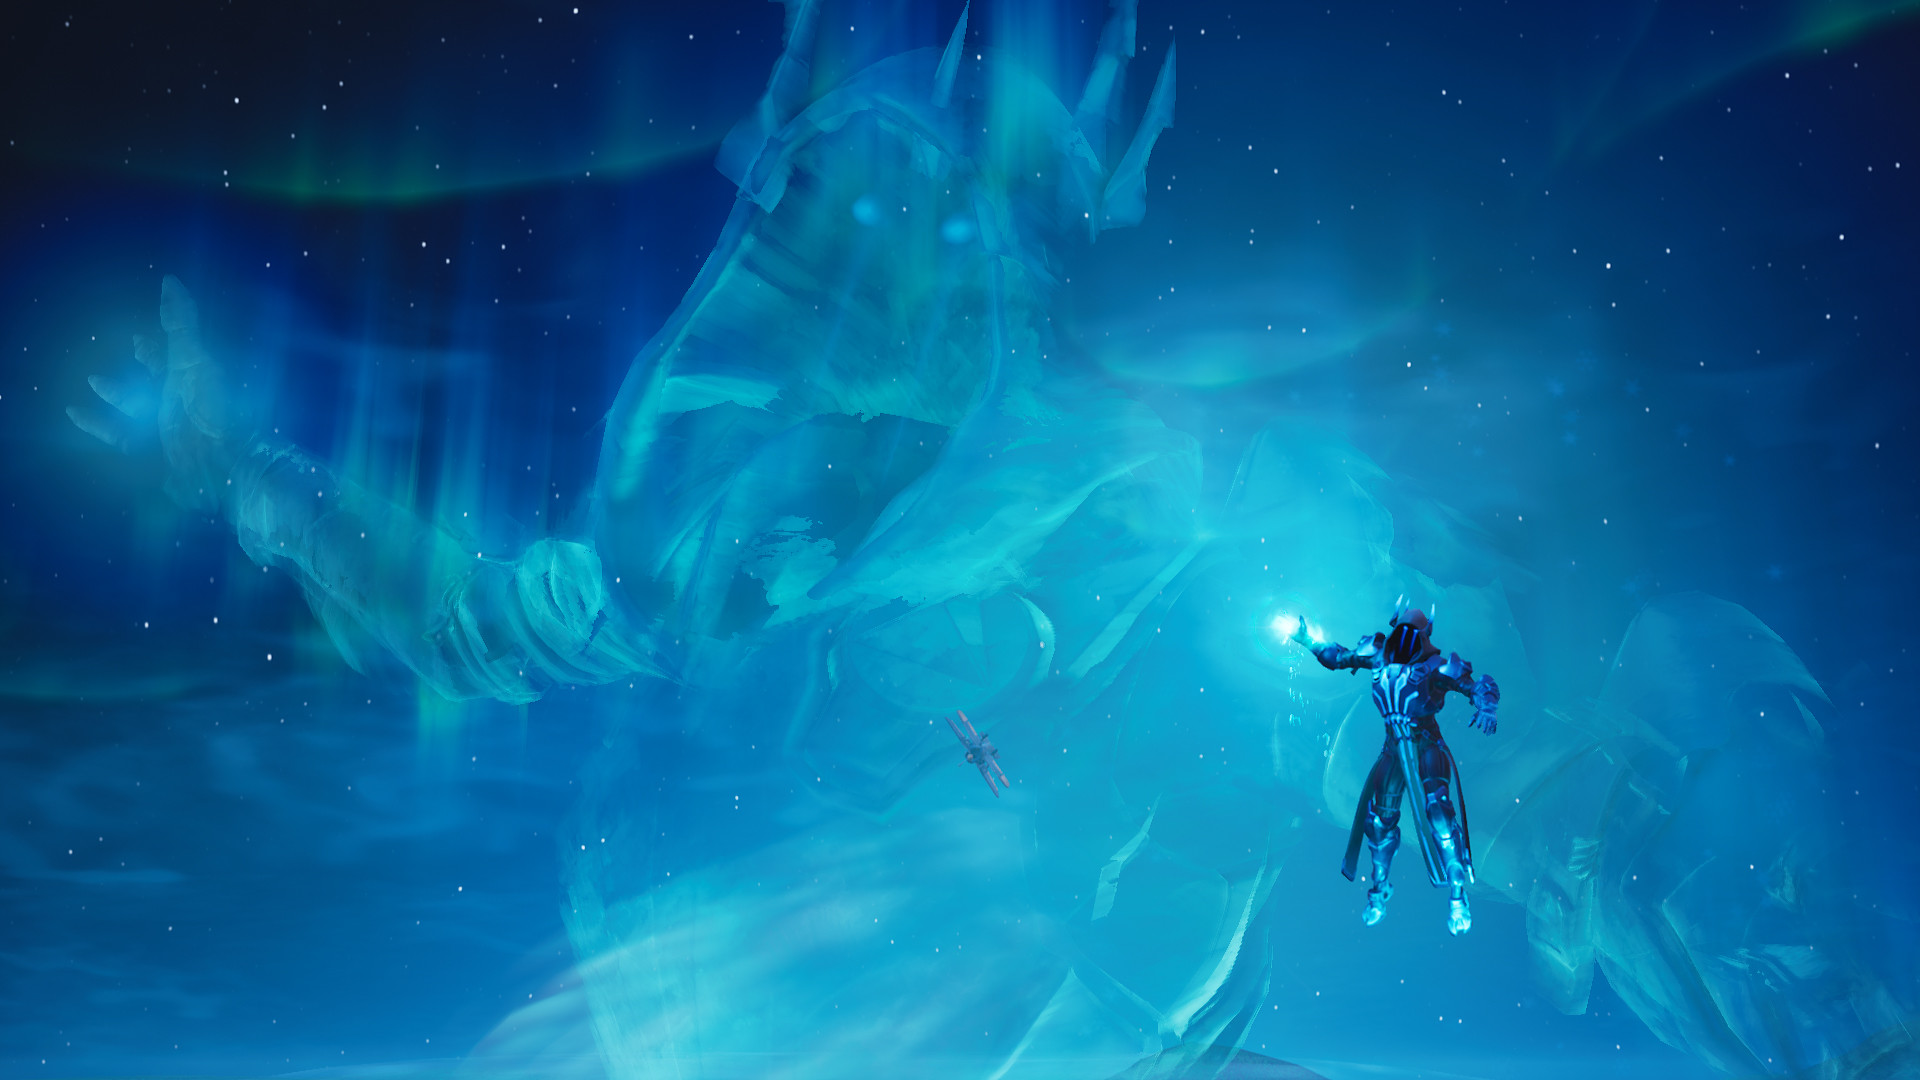 1920x1080 The Ice King during the Ice Storm event.